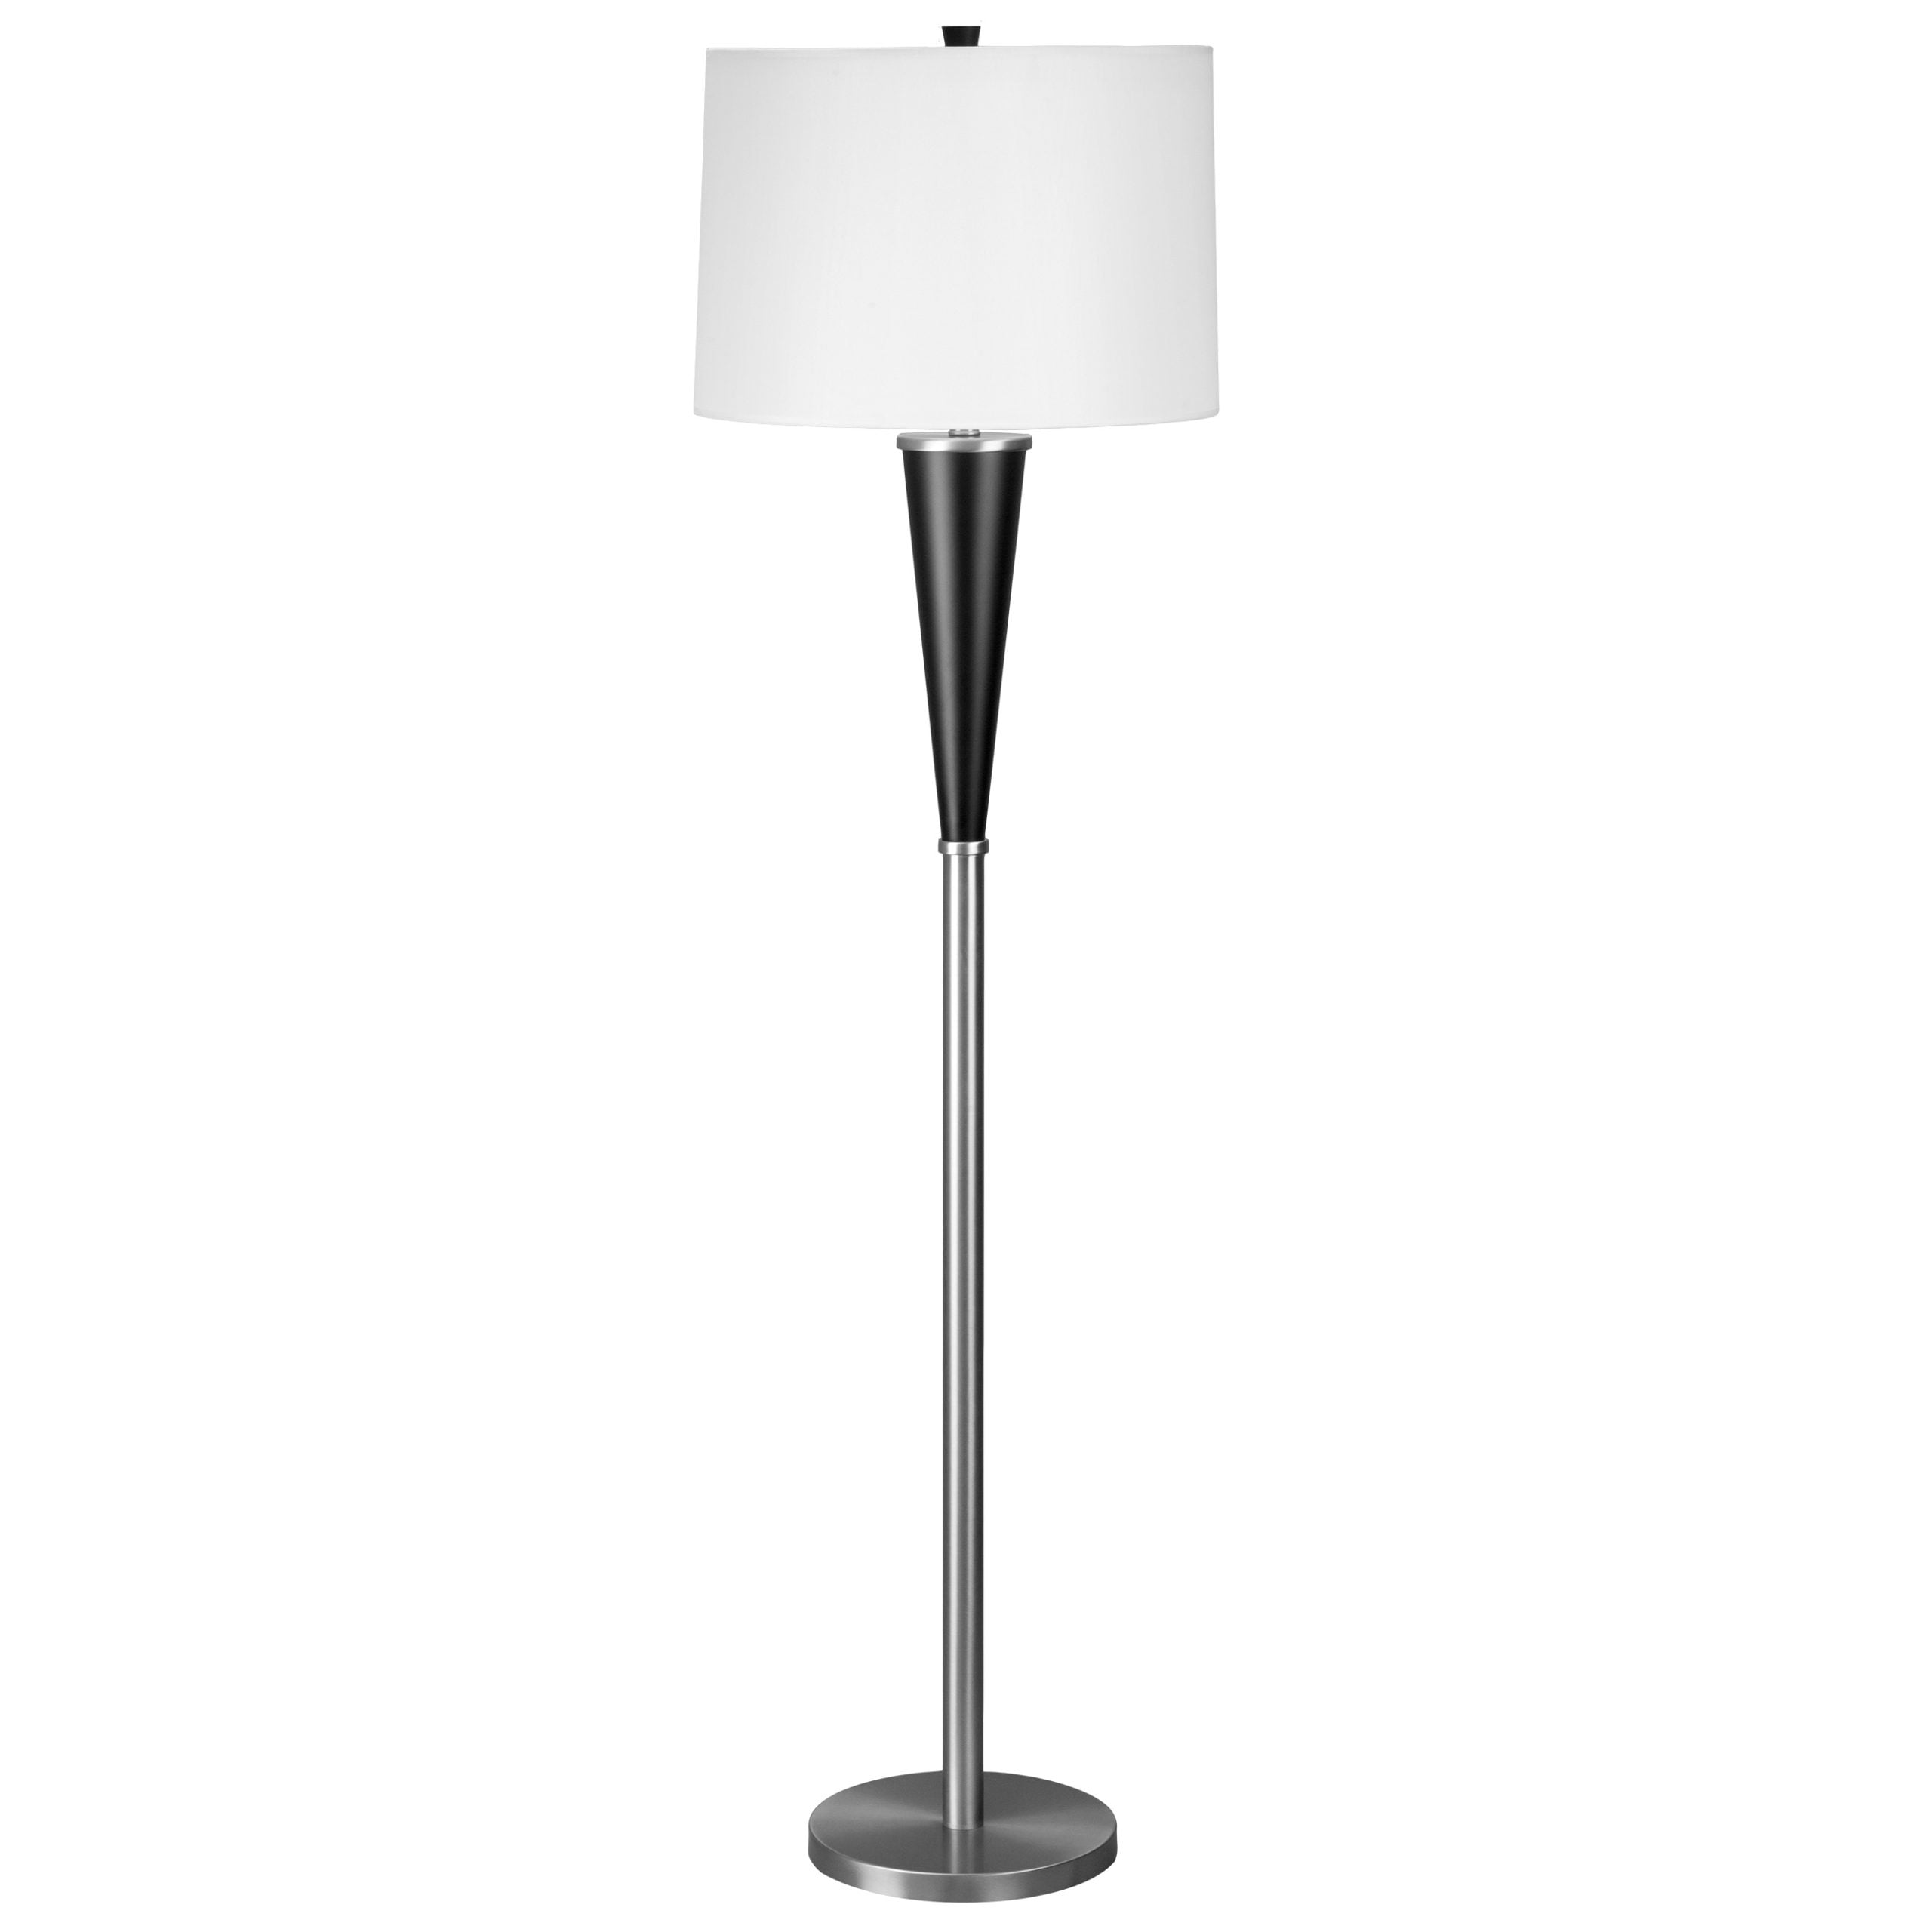 Serenity Floor Lamp II